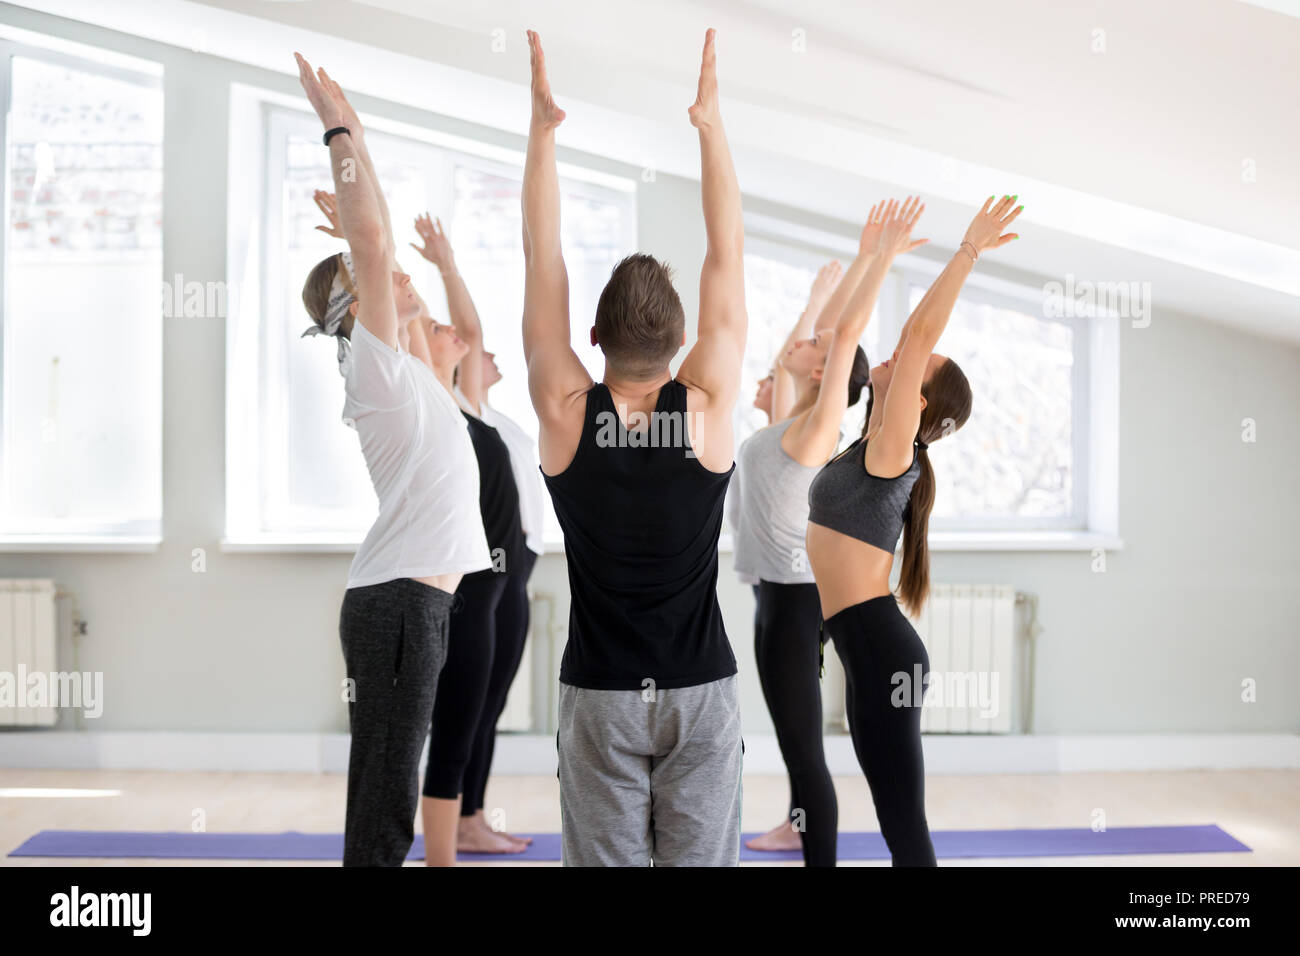 Group of young sporty people practicing yoga lesson, doing Tadasana exercise, mountain pose, working out, indoor full length, yogi students training i Stock Photo